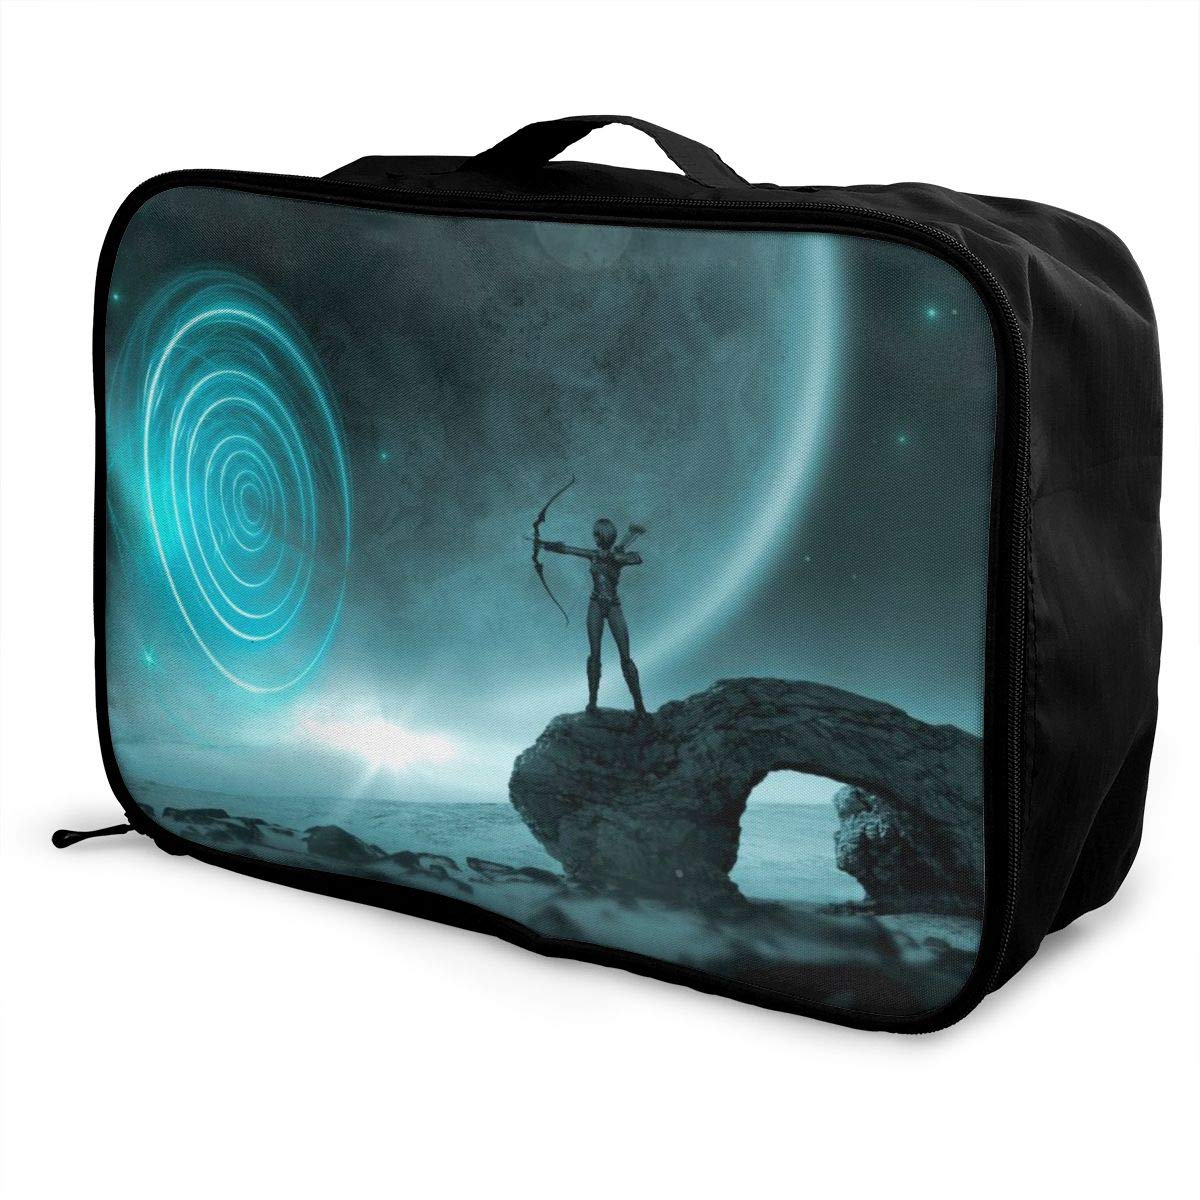 Fantasy Planet Woman Sky Travel Lightweight Waterproof Foldable Storage Carry Luggage Large Capacity Portable Luggage Bag Duffel Bag